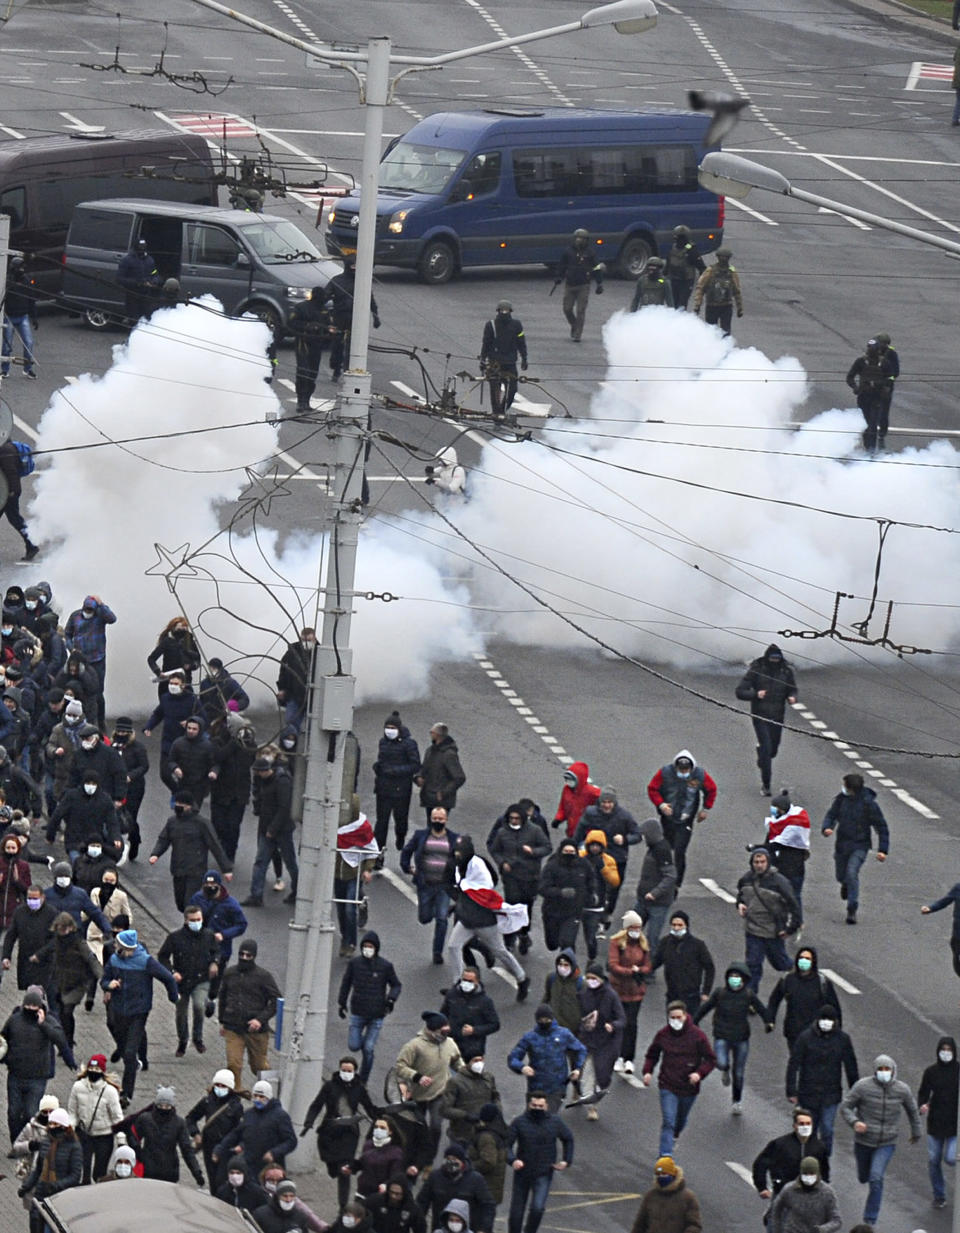 Belarusian riot police use flash grenades against demonstrators during an opposition rally to protest the official presidential election results in Minsk, Belarus, Sunday, Nov. 15, 2020. The Sunday demonstrations continued to wave of near-daily protests that have gripped Belarus since early August. In the capital Minsk, police wielded clubs and used tear gas and water cannon disperse thousands of demonstrators. (AP Photo)